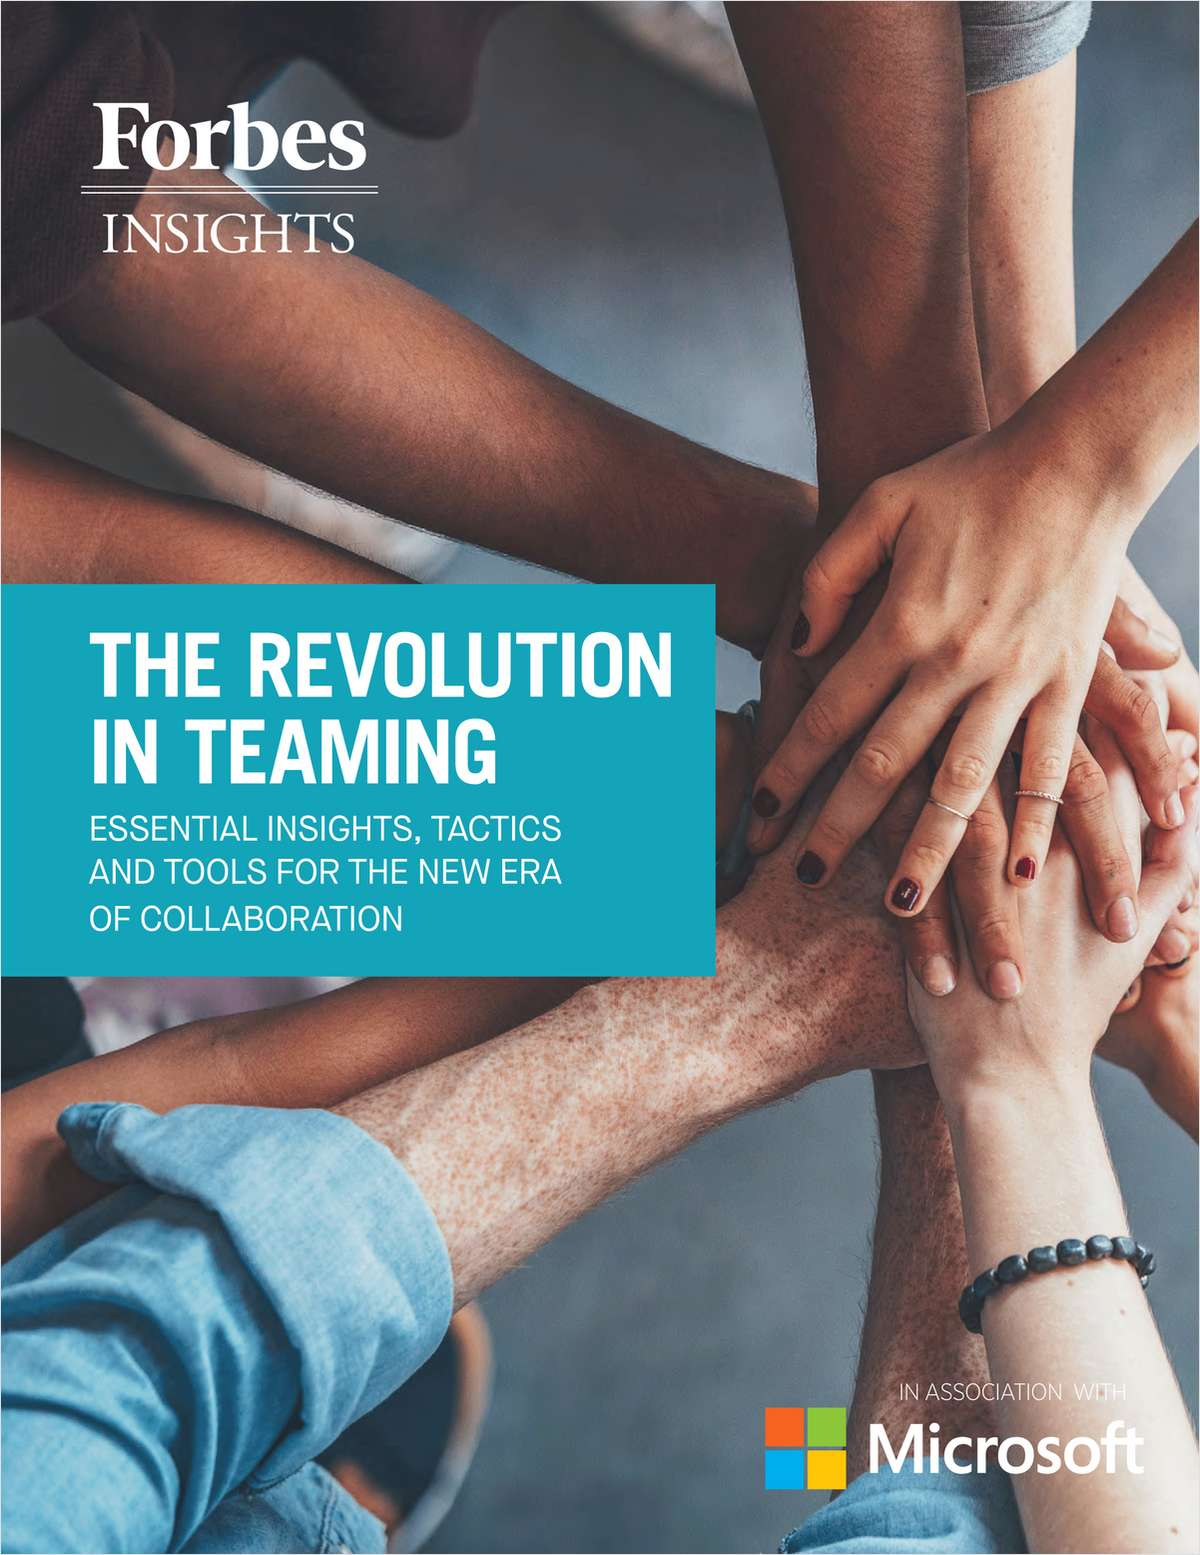 Forbes Report: Revolution in Teaming